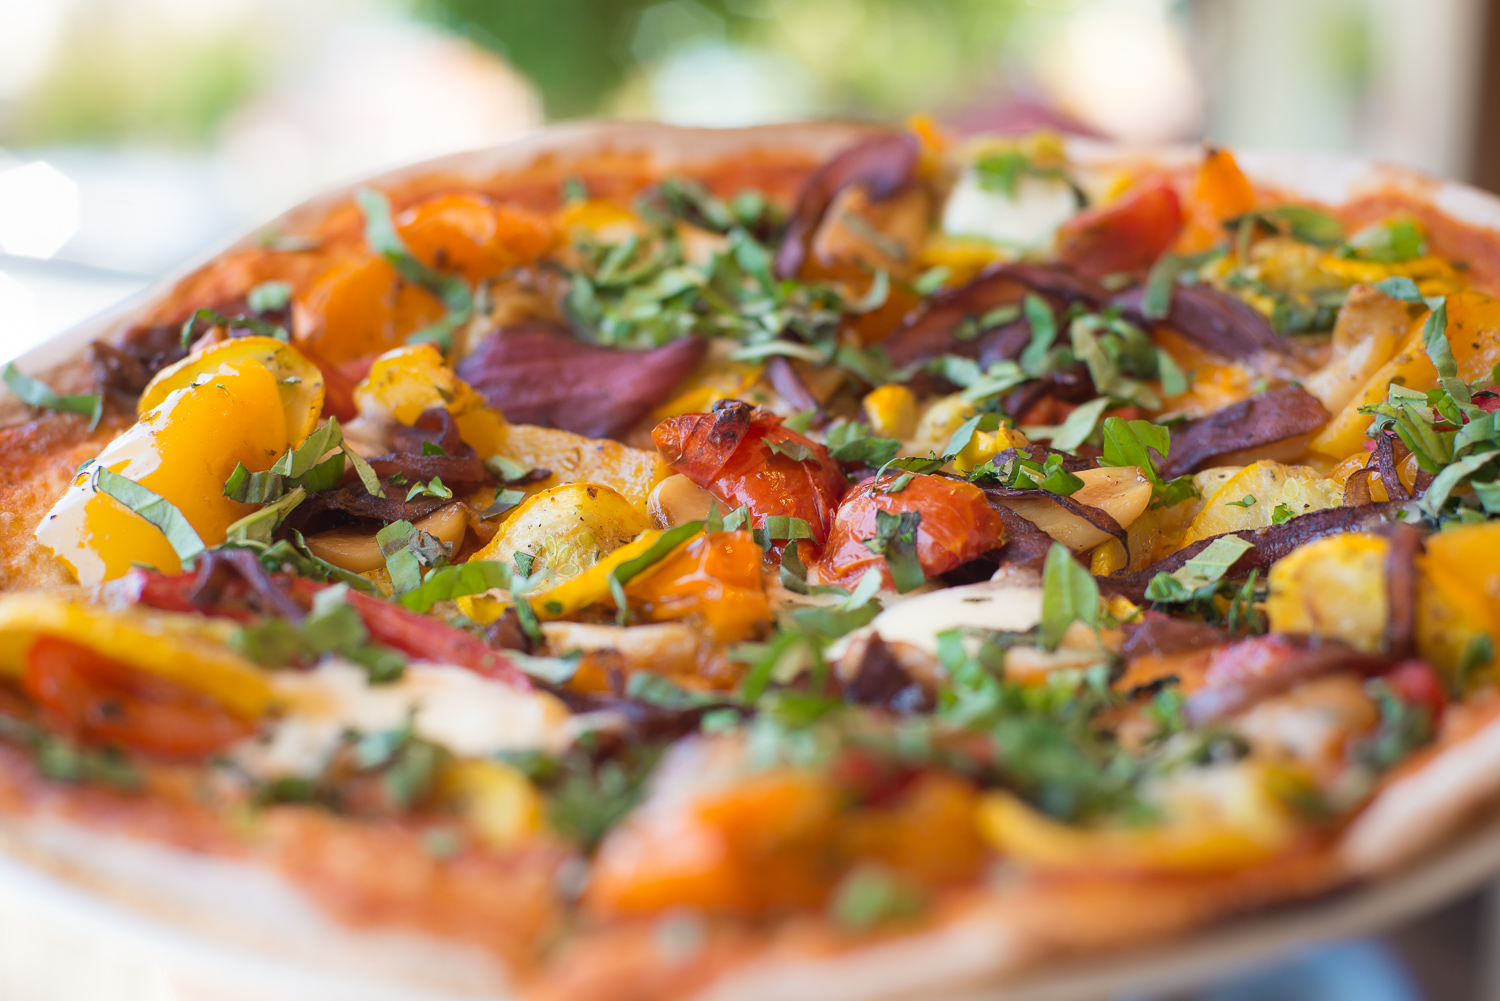 Thin crust organic vegetable pizza